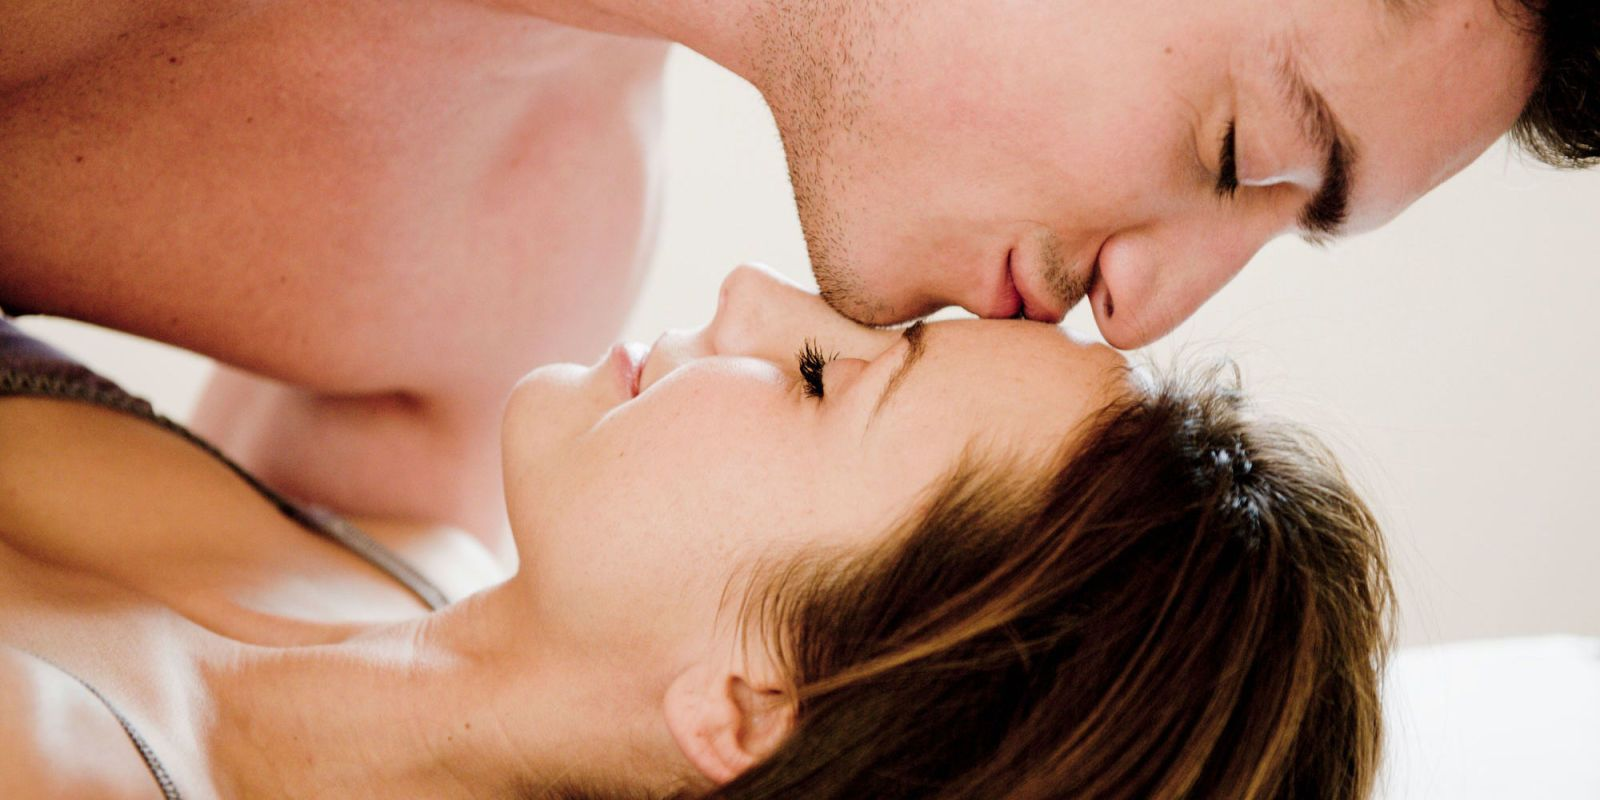 Things to know before hookup a sensitive guy